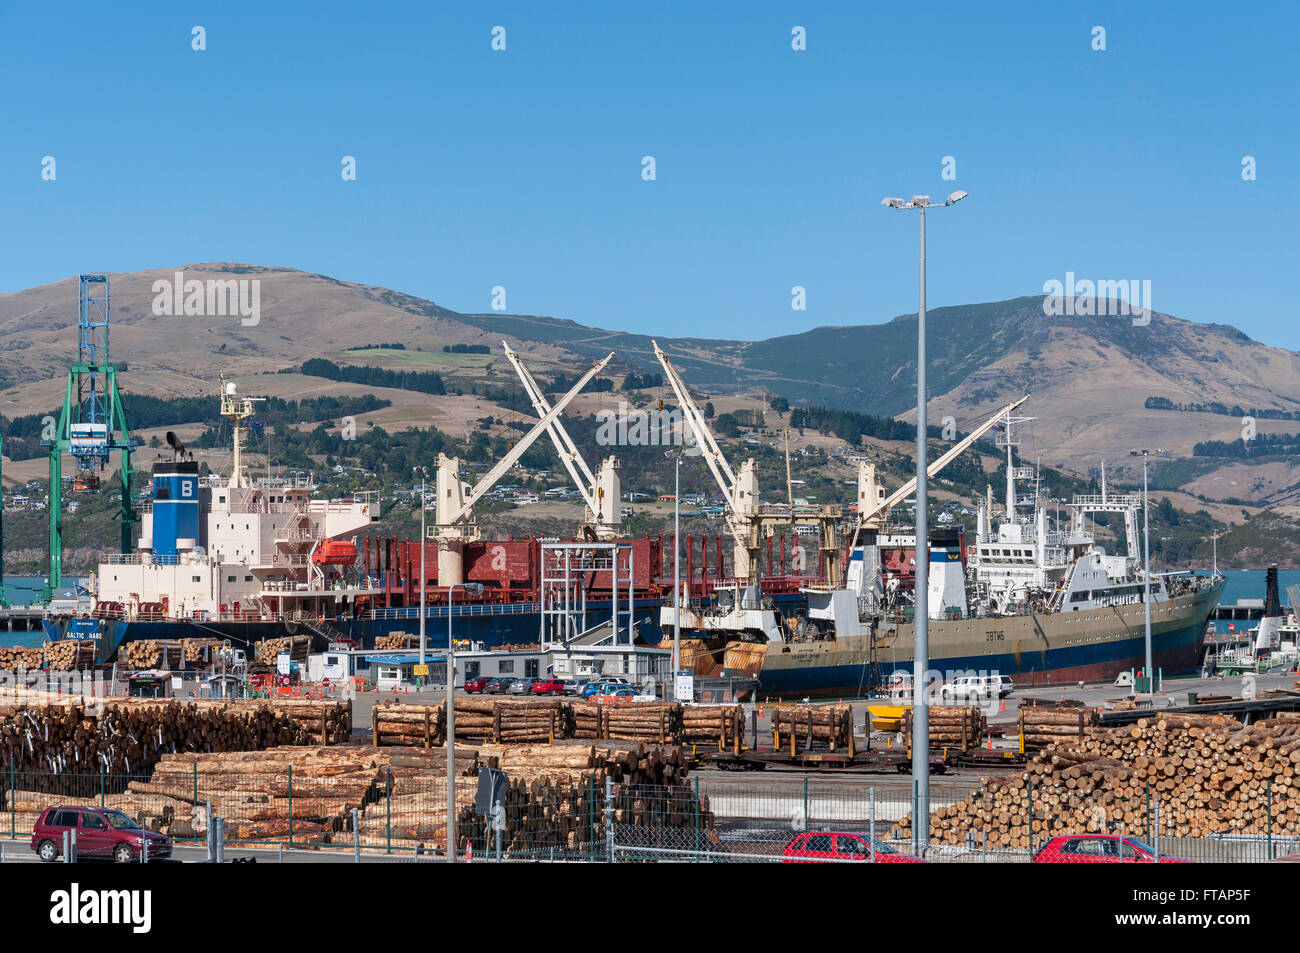 Piles of logs ready for loading at Container Port, Lyttelton Harbour, Lyttelton, Banks Peninsula, Canterbury, New - Stock Image